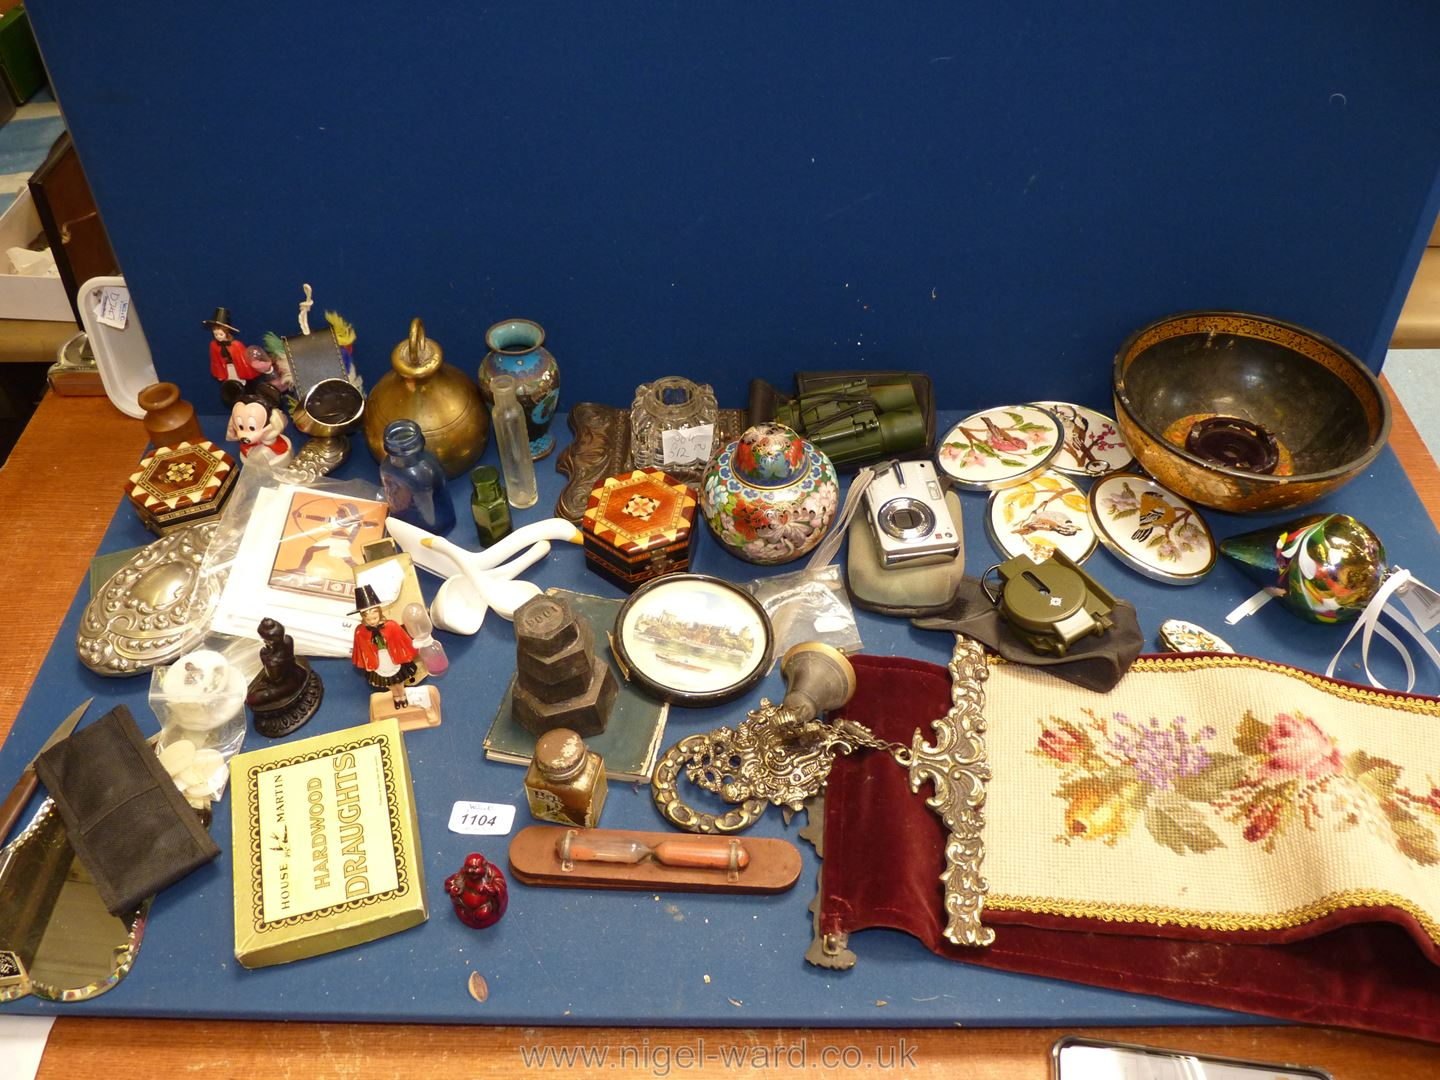 A quantity of miscellanea including souvenir egg timers, large brass weight, cloisonne jar and vase,